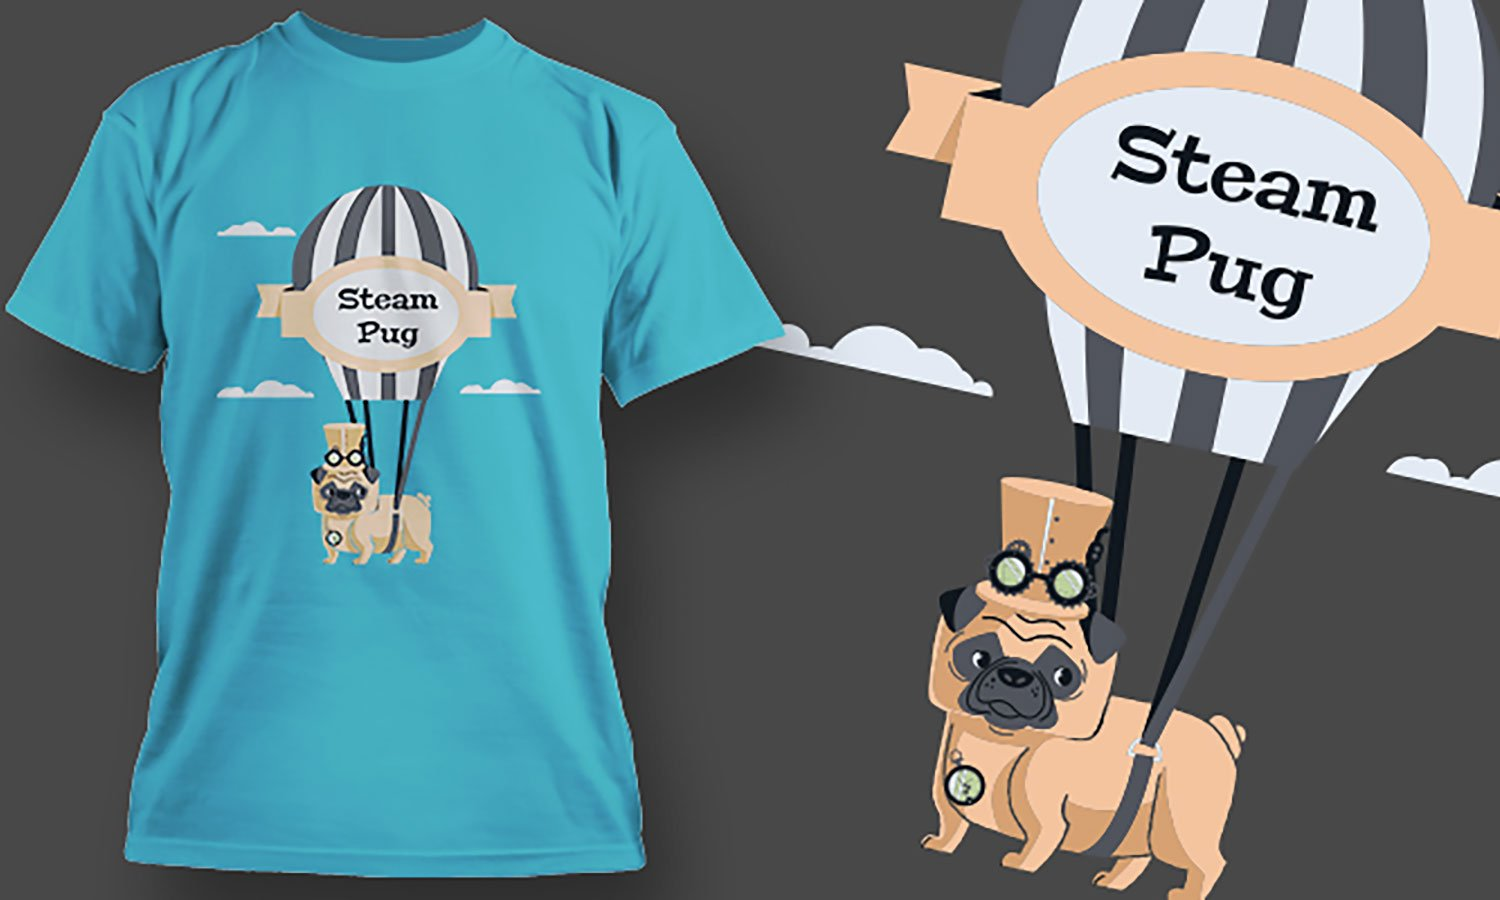 Steam Pug - Printed T-Shirt for Men, Women and Kids - TS439